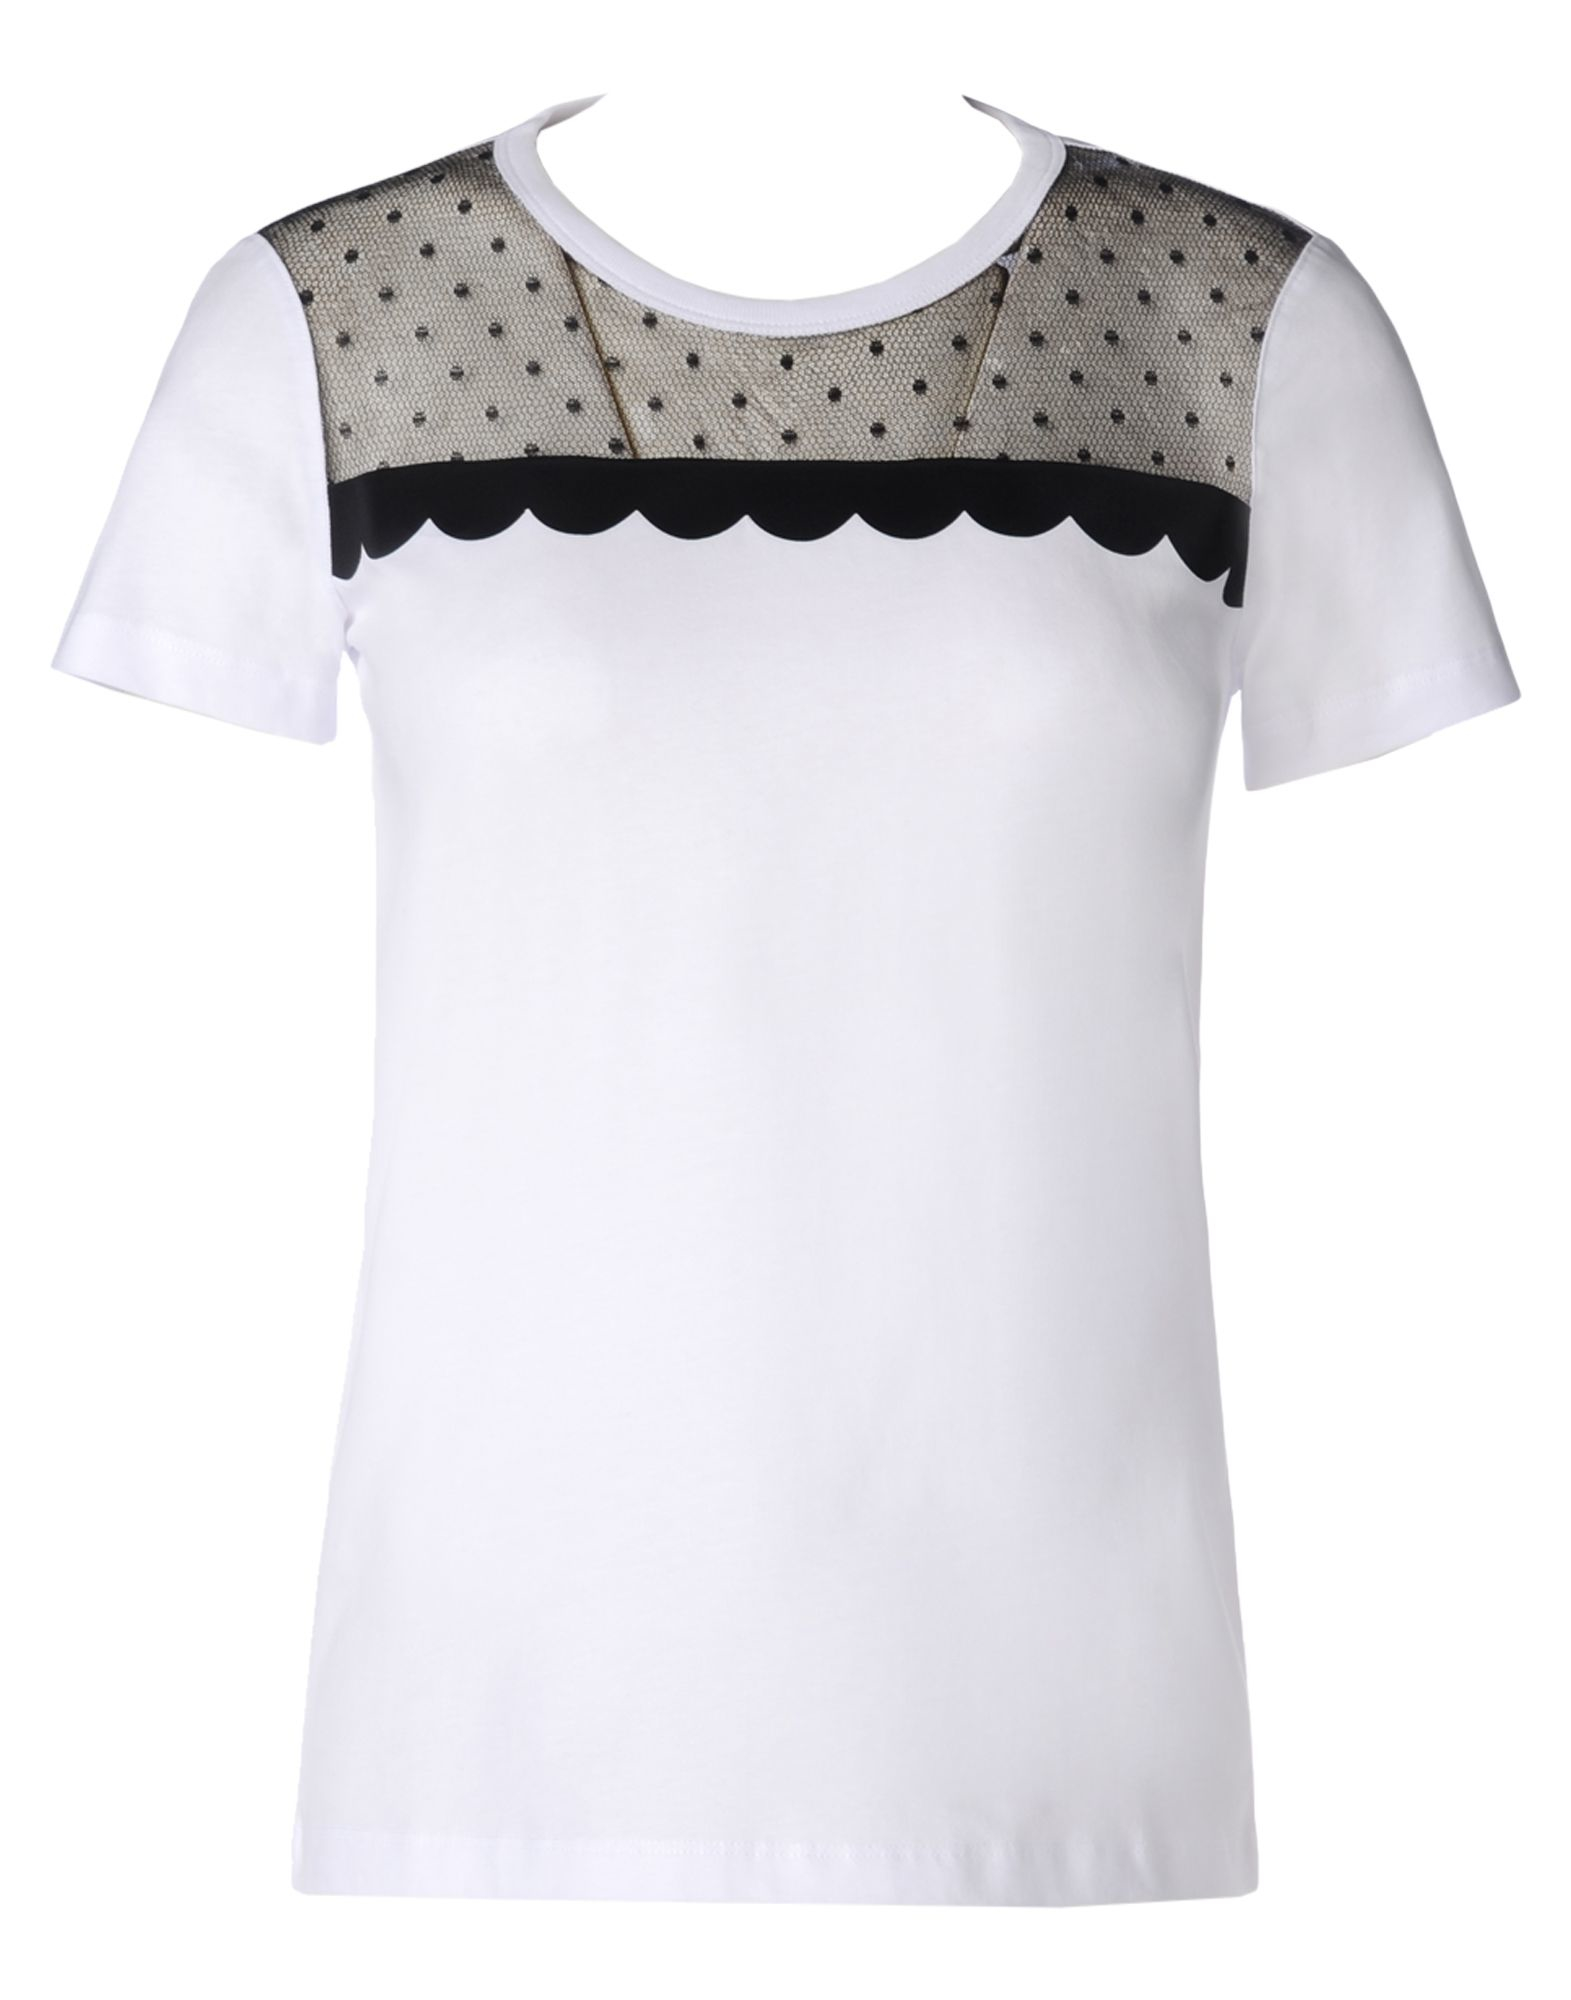 Red valentino scallop and tulle t shirt in white lyst for Red valentino t shirt